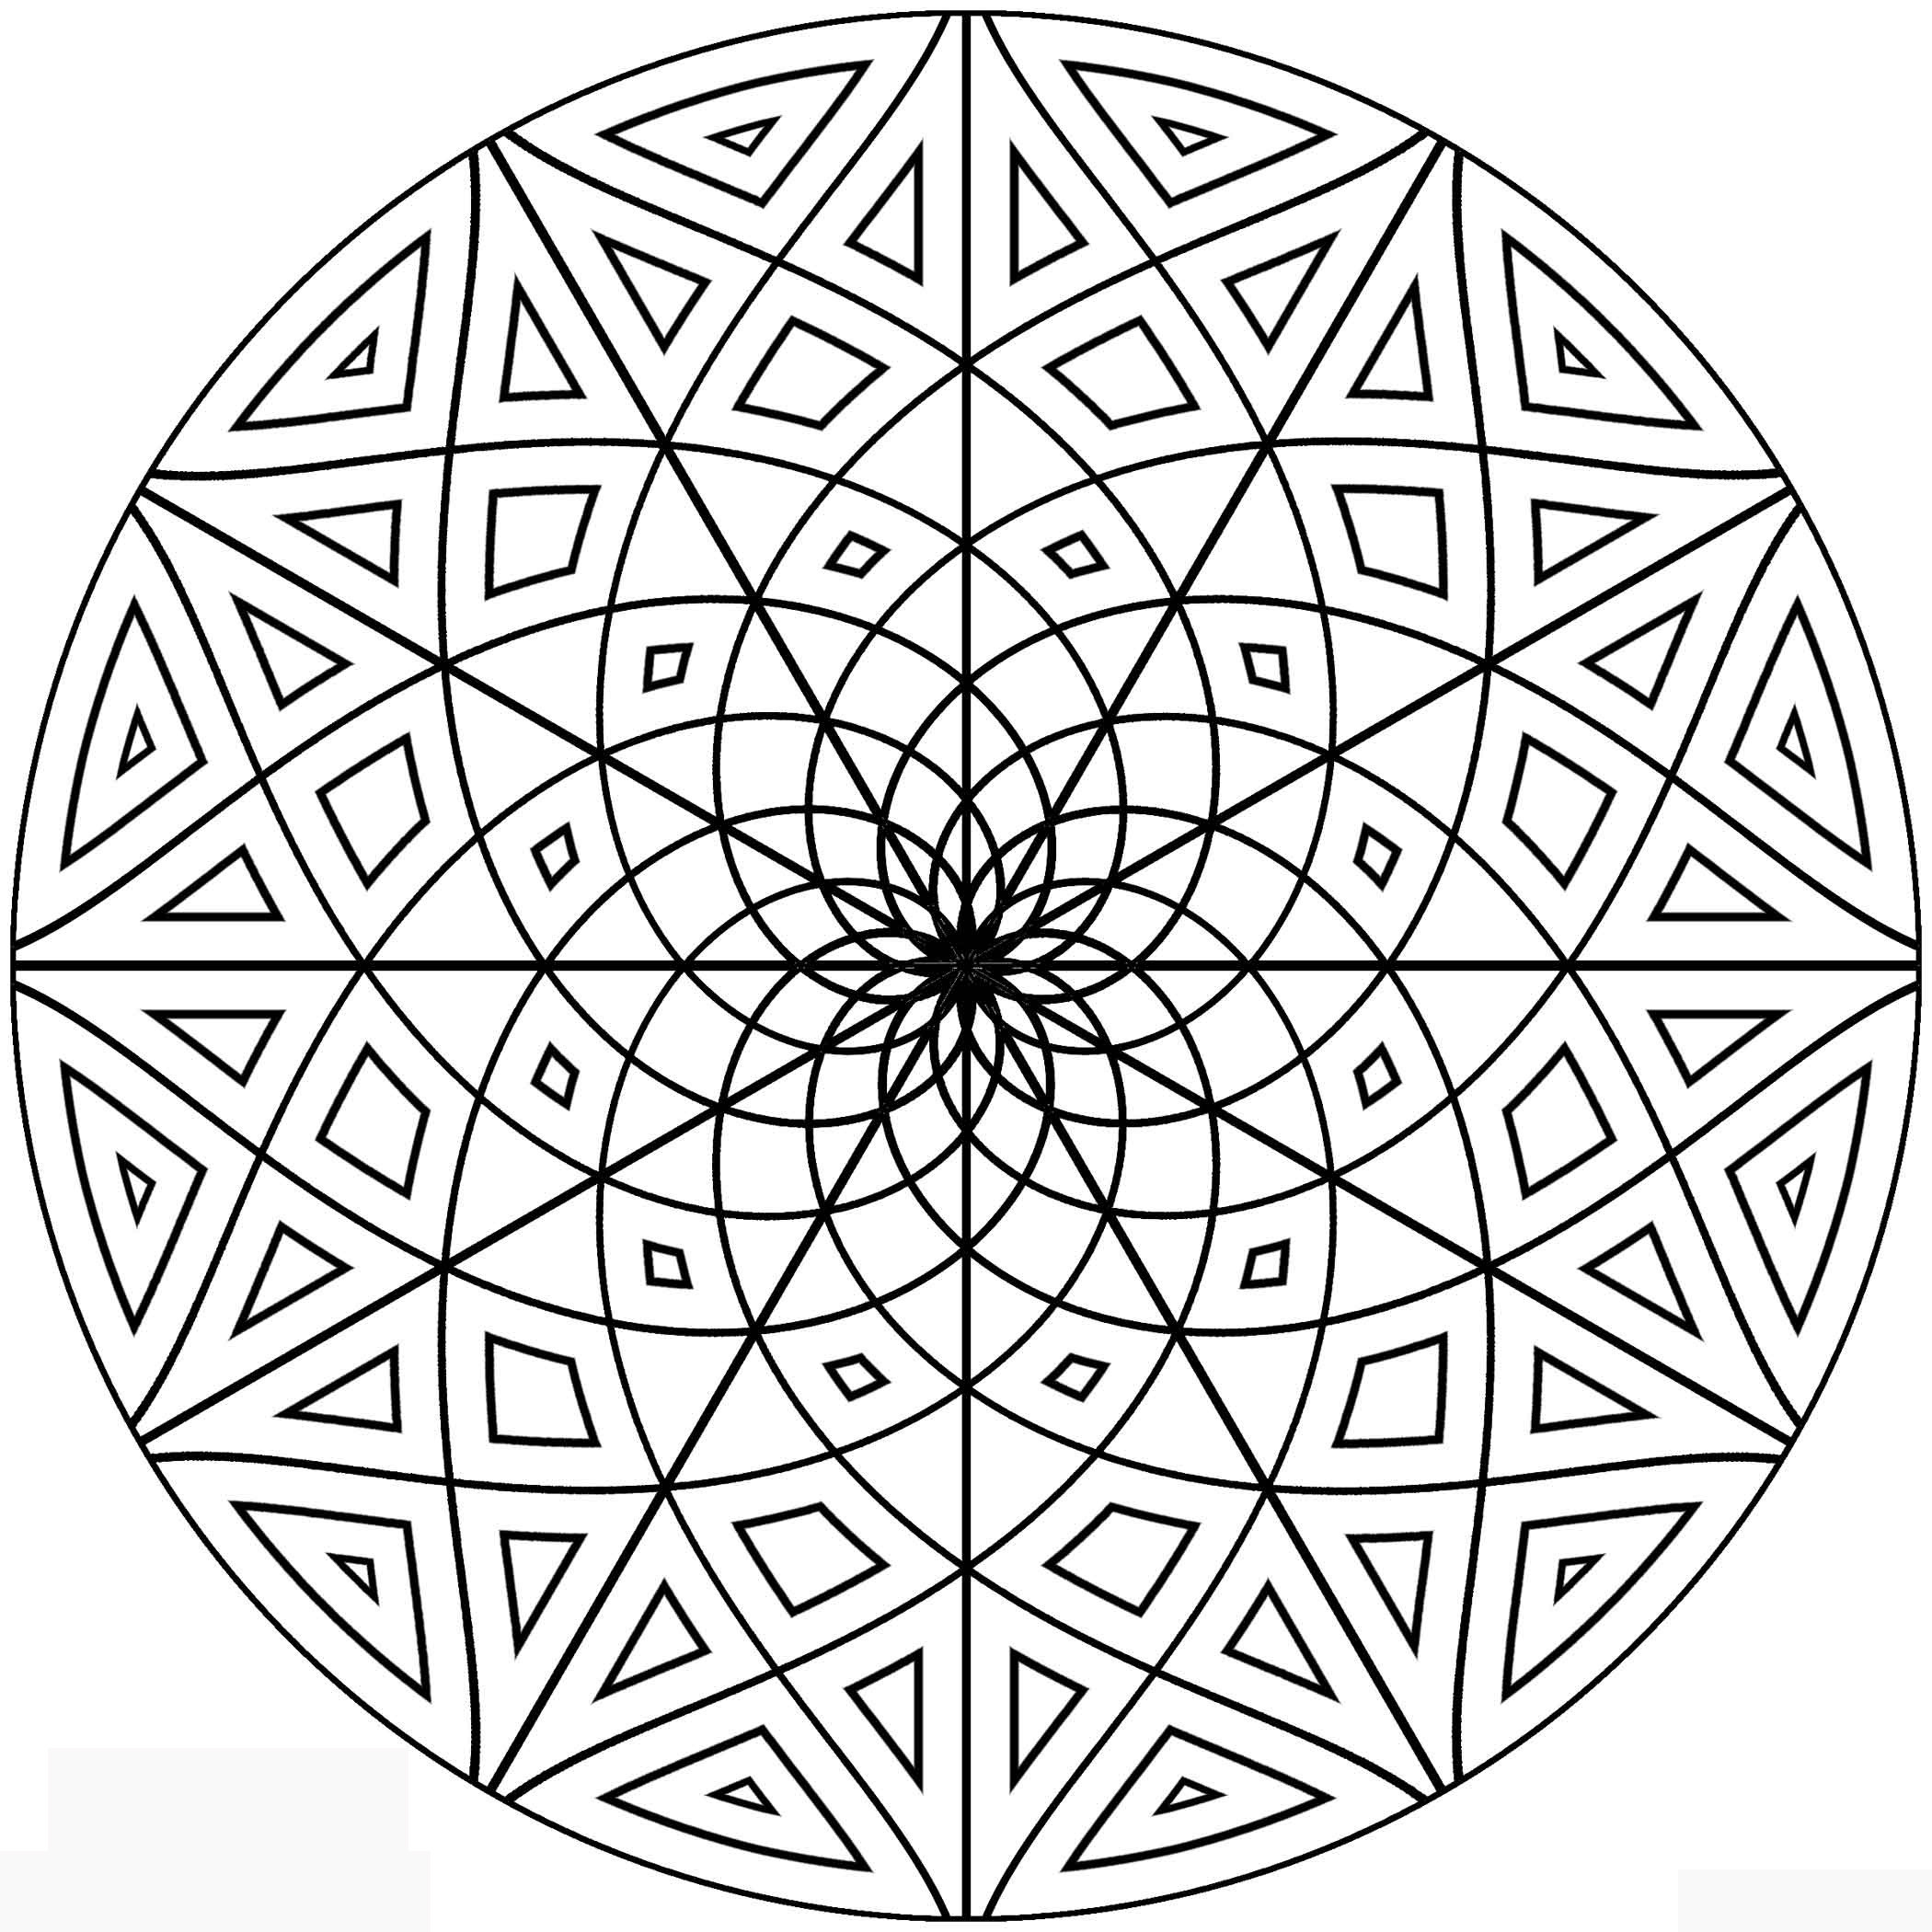 Free Coloring Sheets  Free Printable Geometric Coloring Pages for Adults